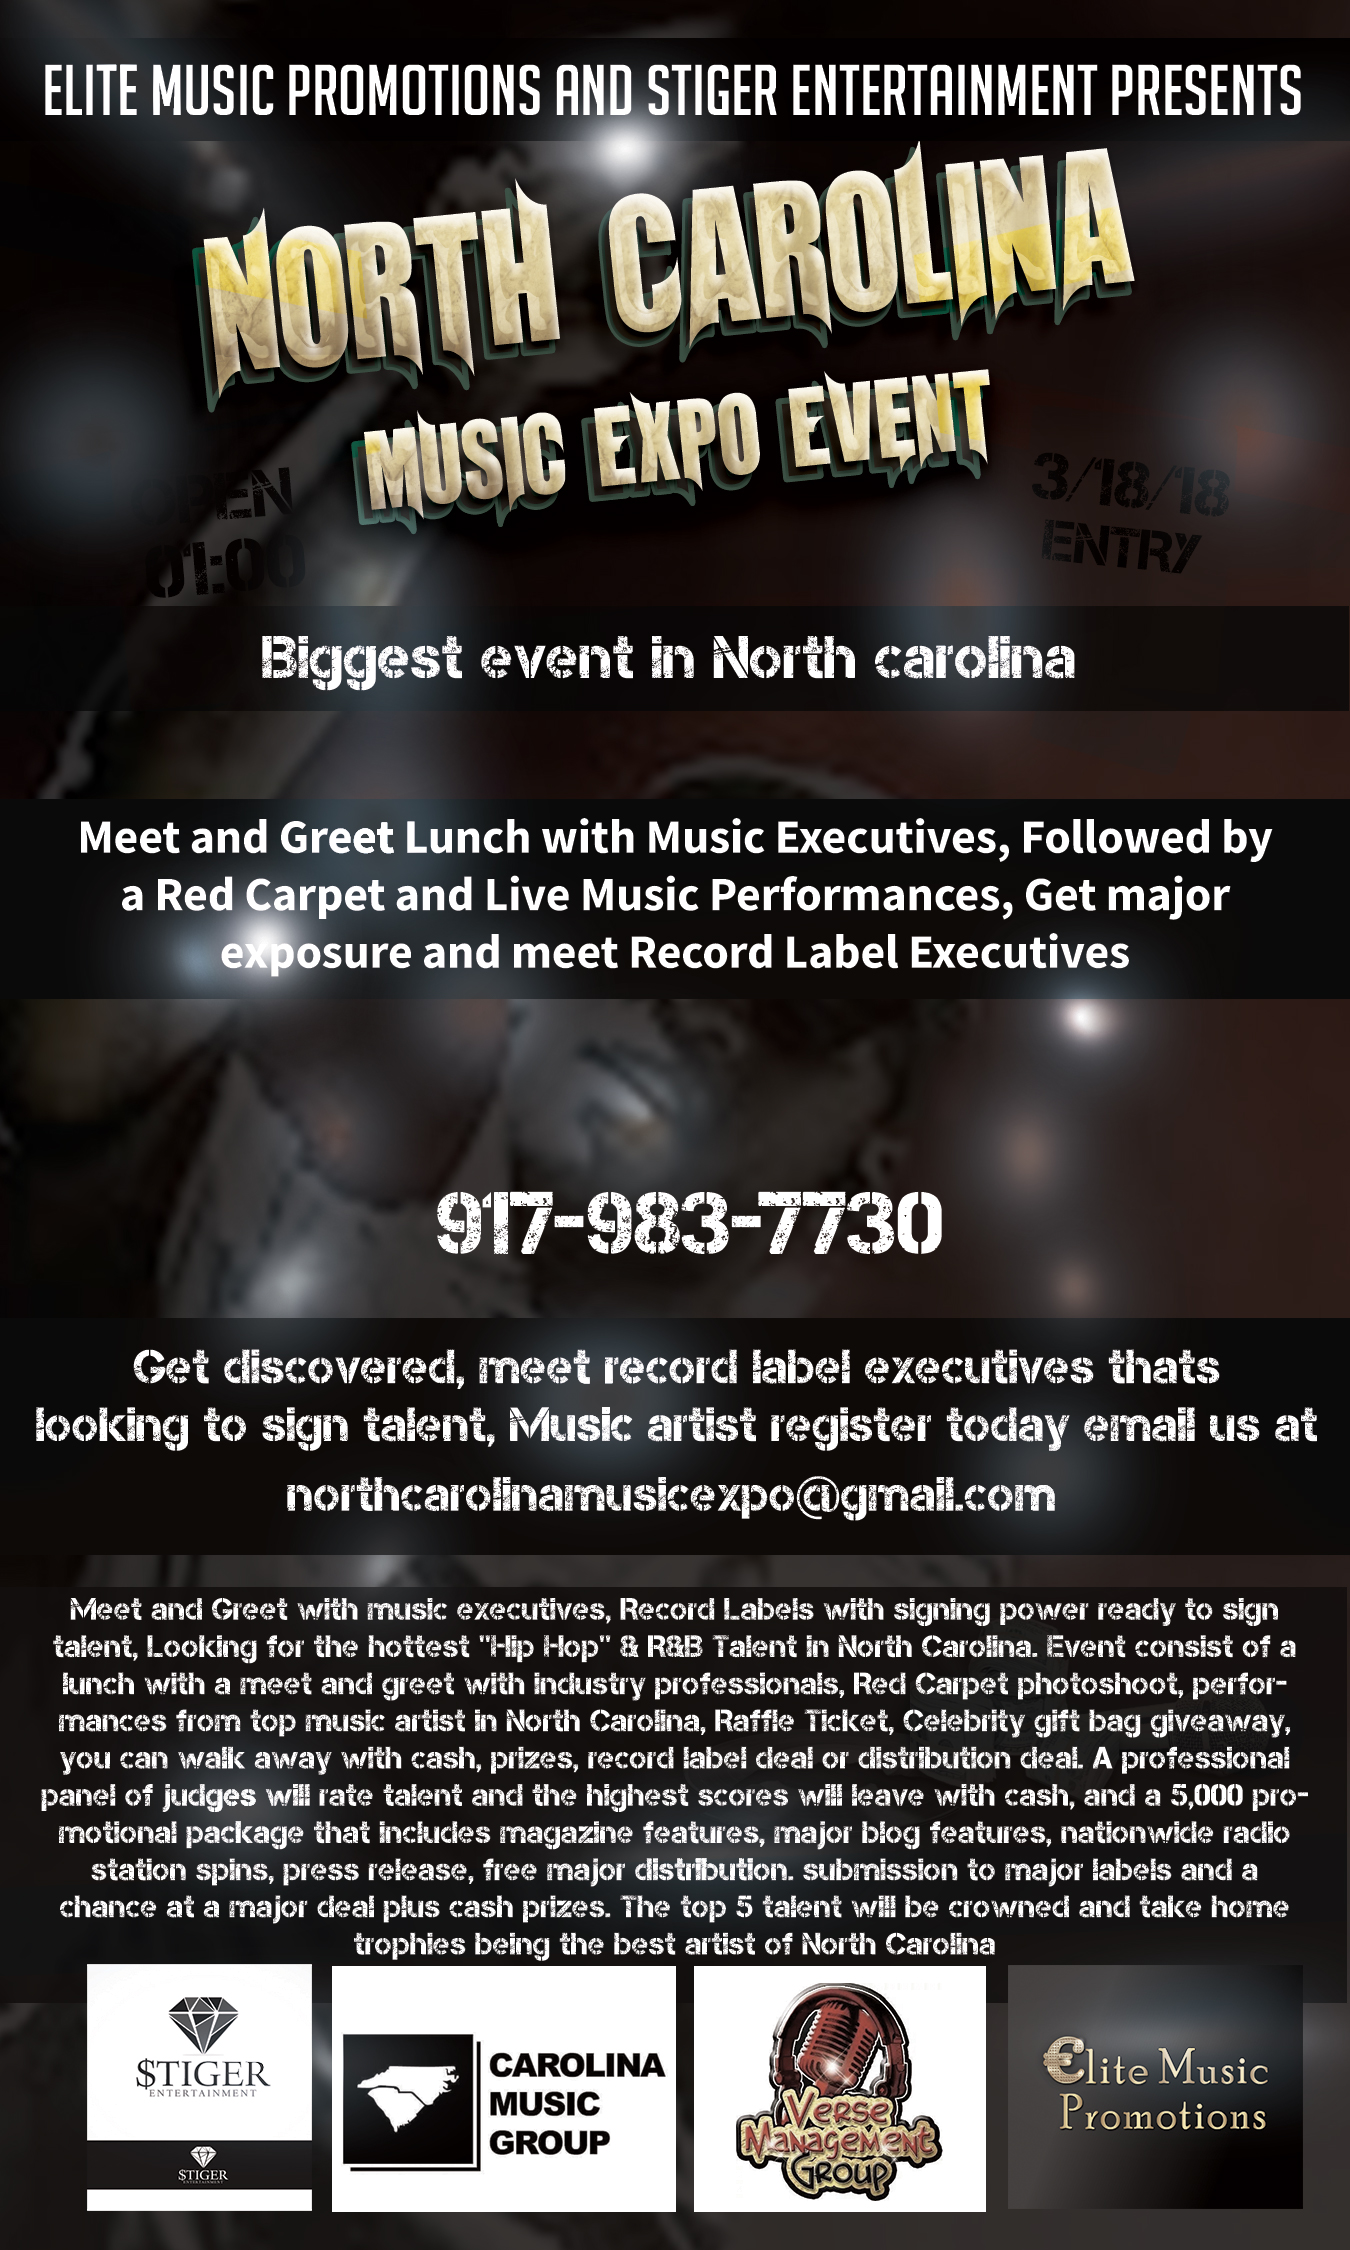 North Carolina Music Expo